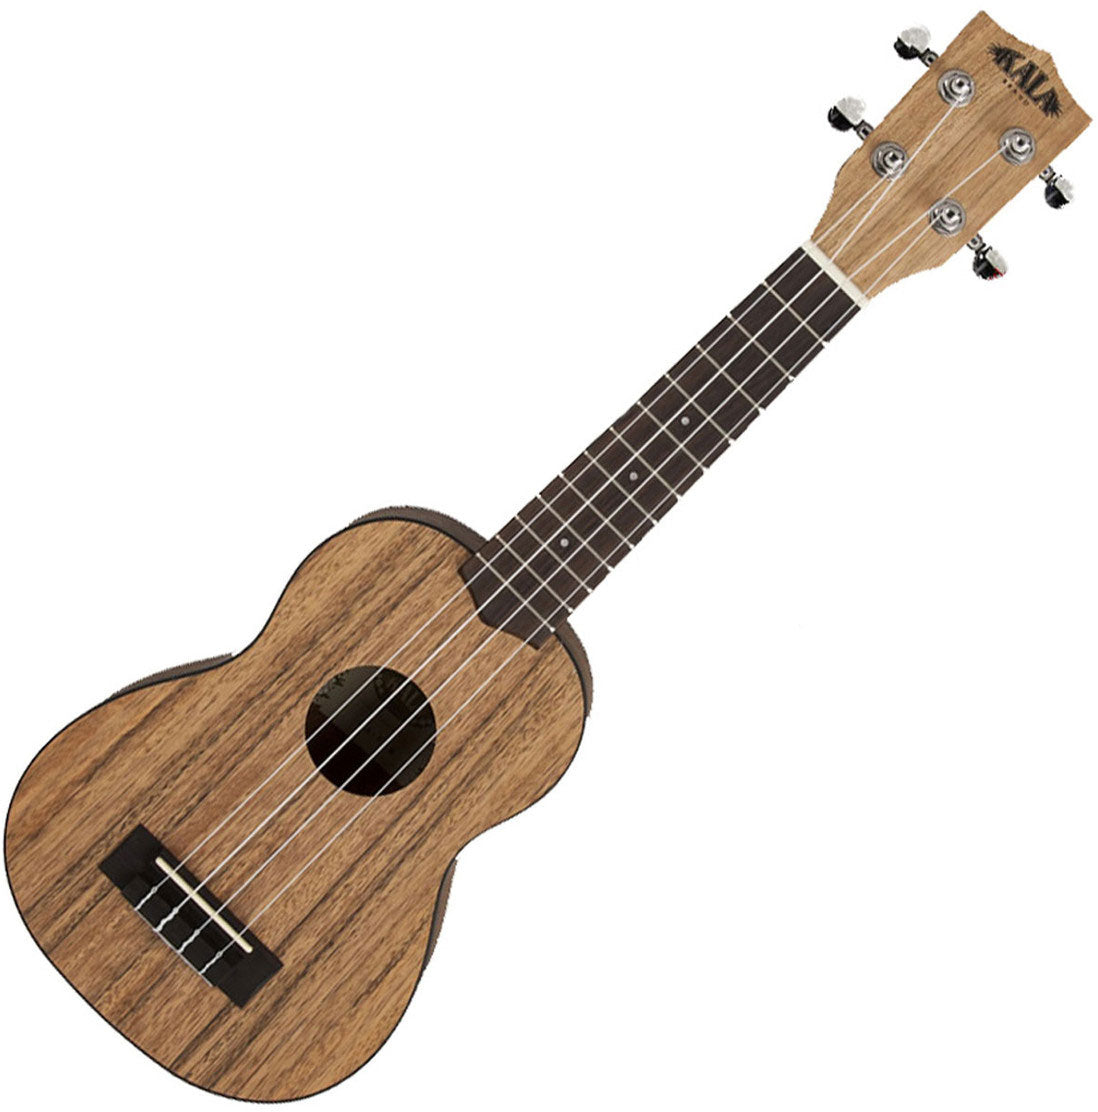 KALA-KA PWS Pacific Walnut Ukulélé Soprano +bag natural